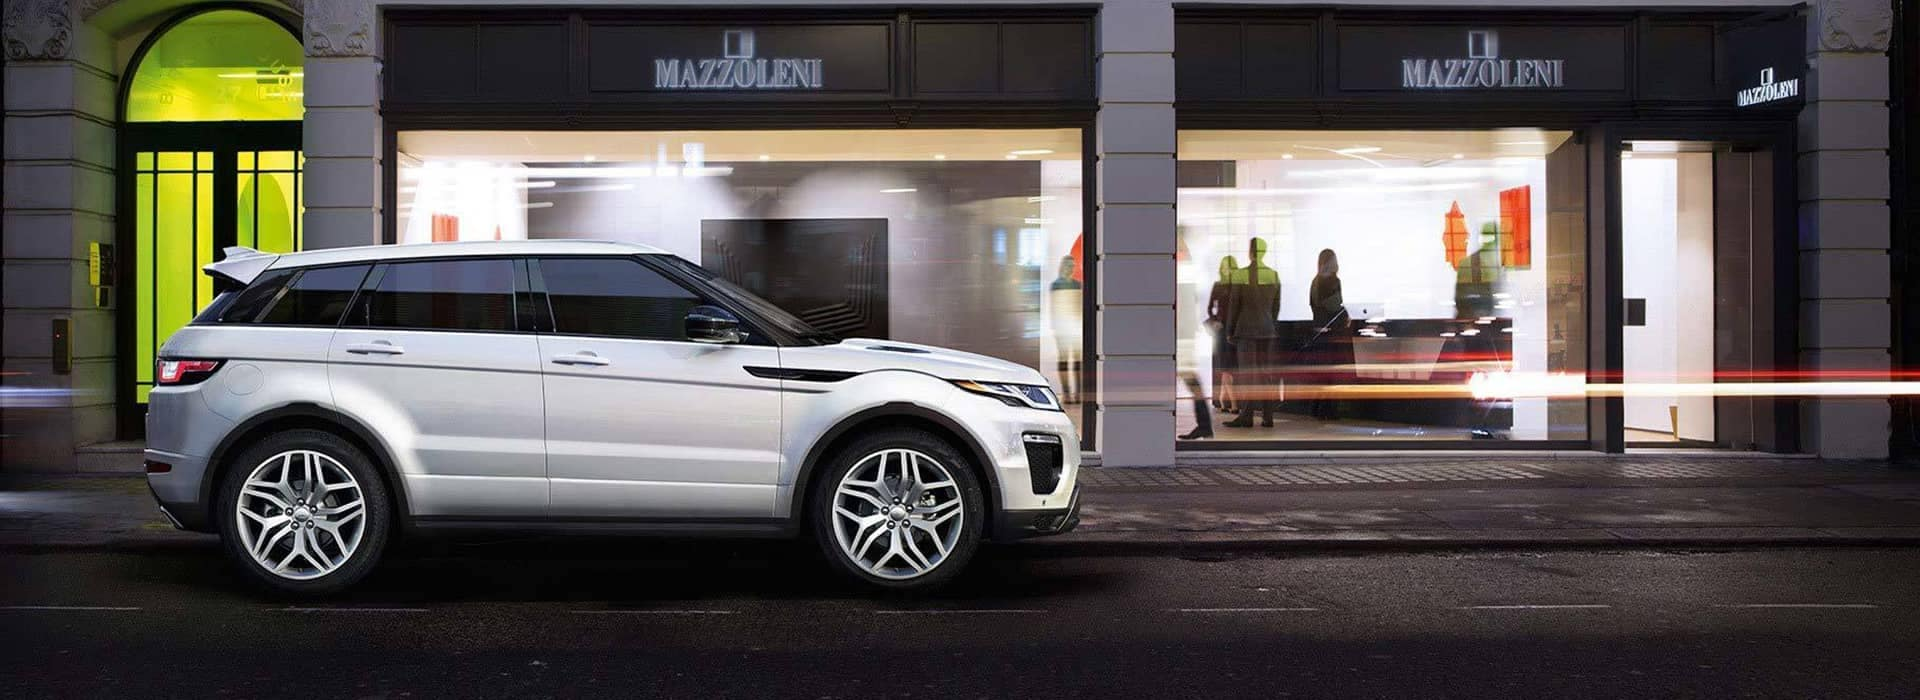 2019 Range Rover Evoque in White